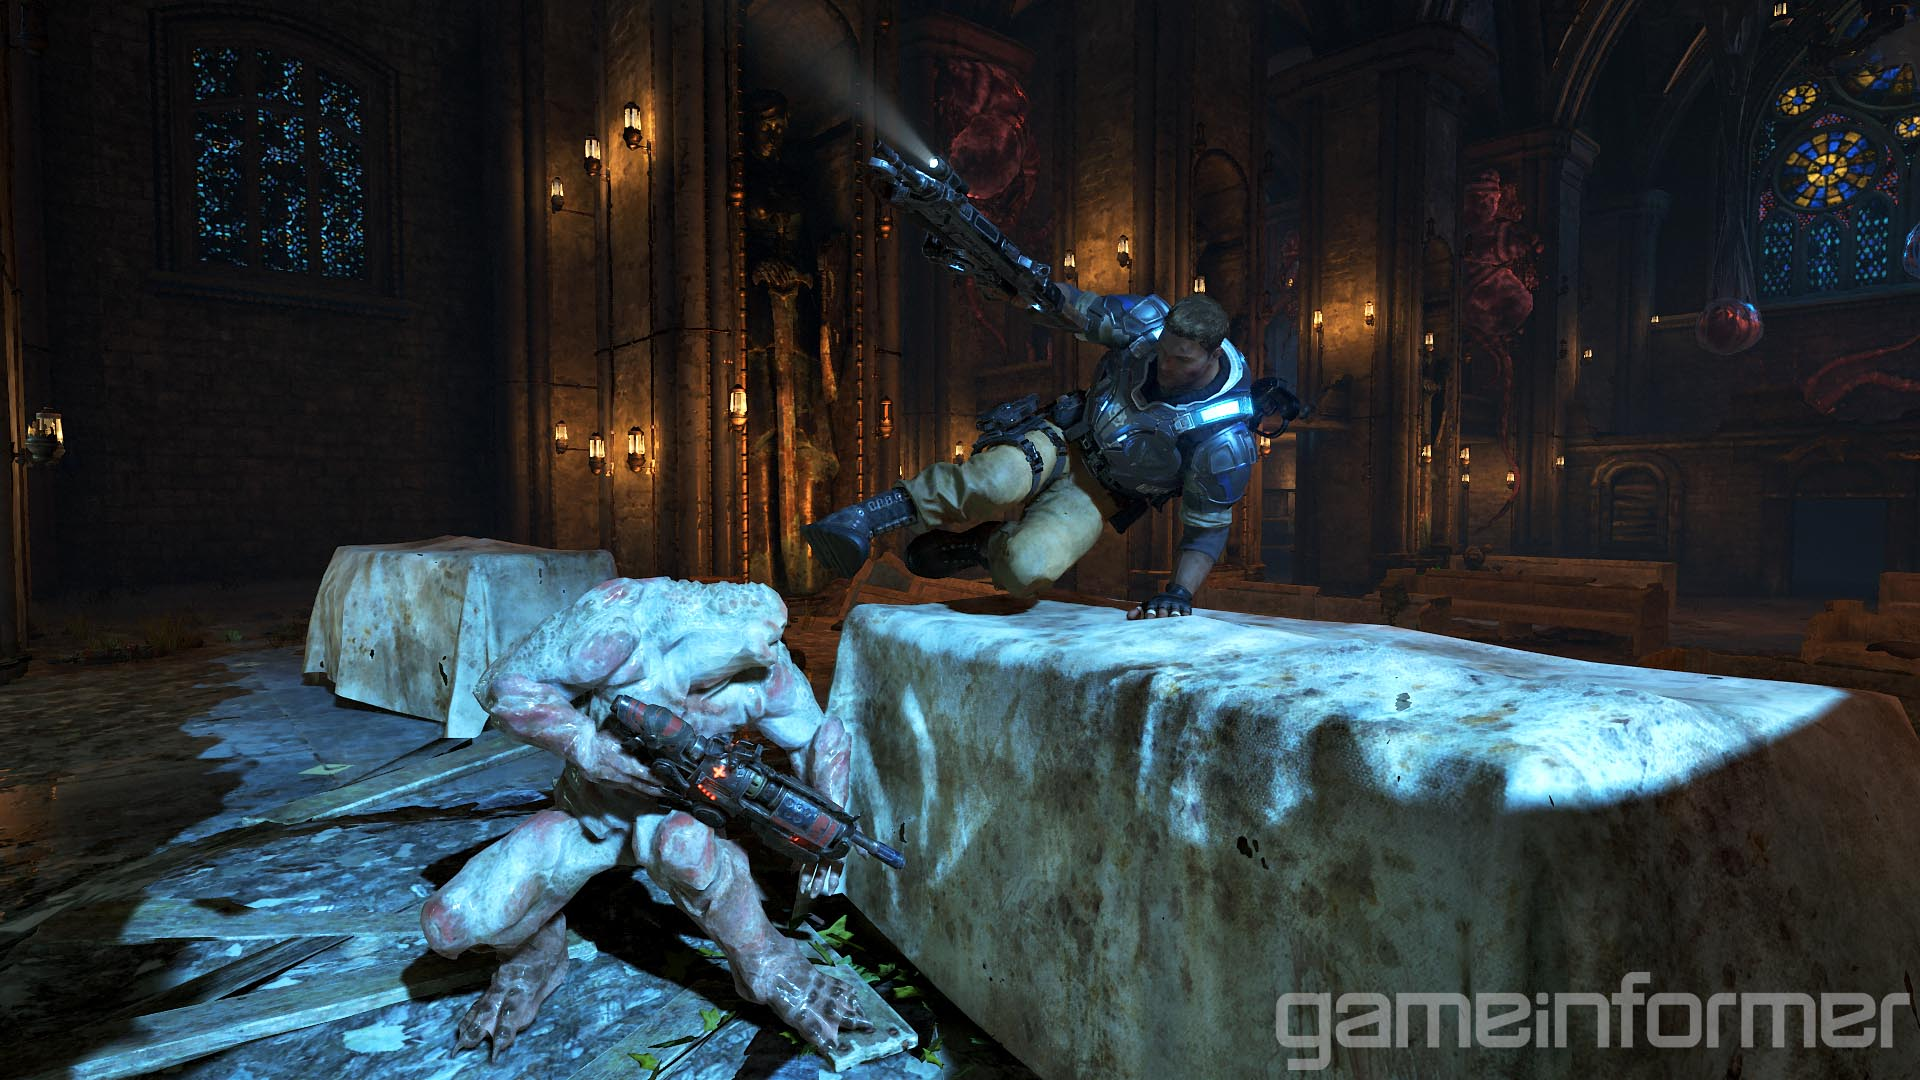 locust drone with Gears War 4 Game Informer Screenshots on Mejores Juegos Xbox 360 104684 furthermore Gears Of War Ultimate Edition Pre Order Characters Exclusives together with Robots moreover Skorge  Gears of War additionally Minecraft Xbla Skin Pack 1 Details.